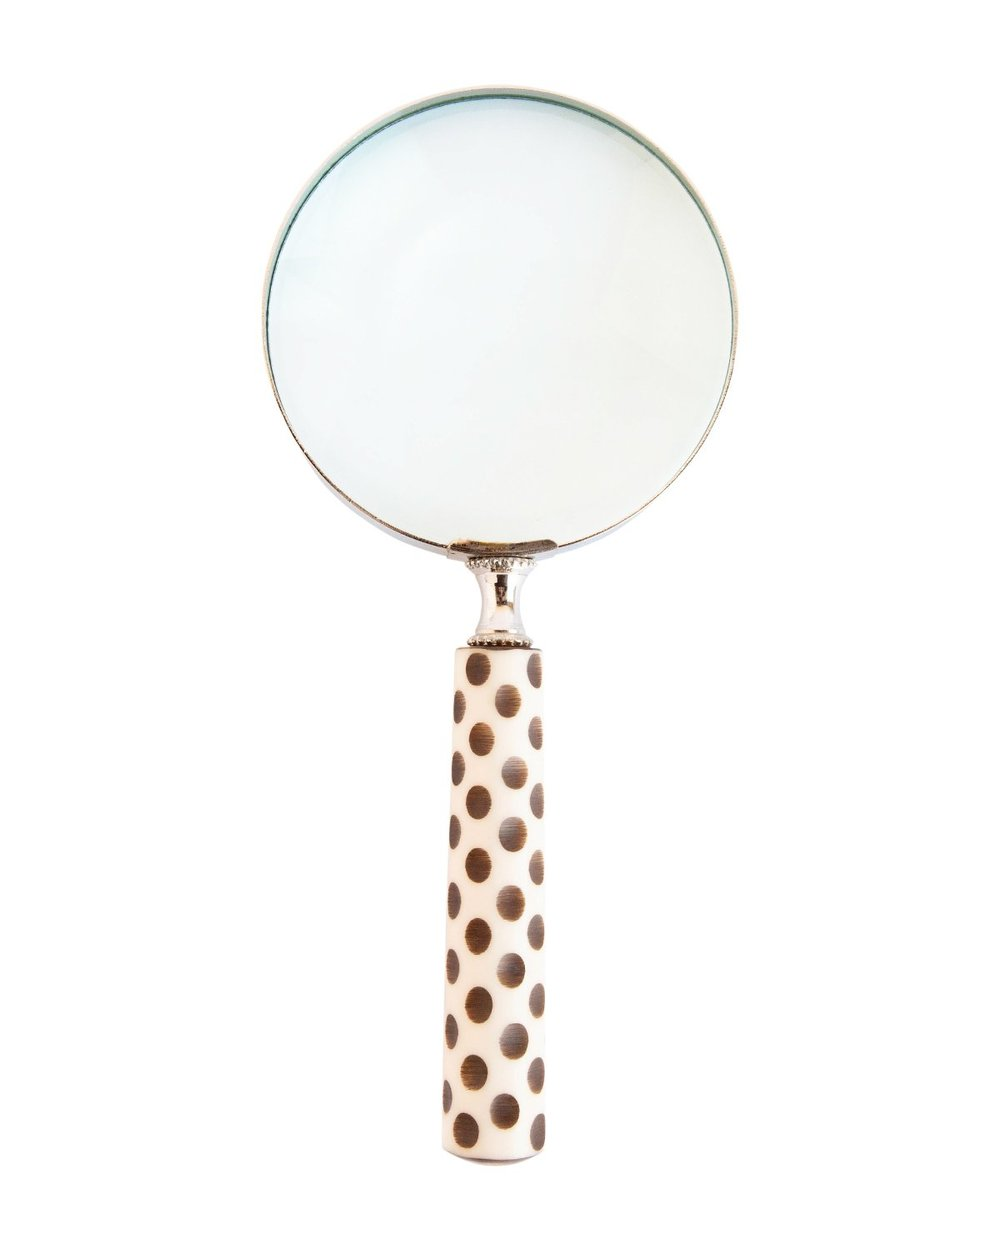 Polka_Dot_Magnifying_Glass_1.jpg